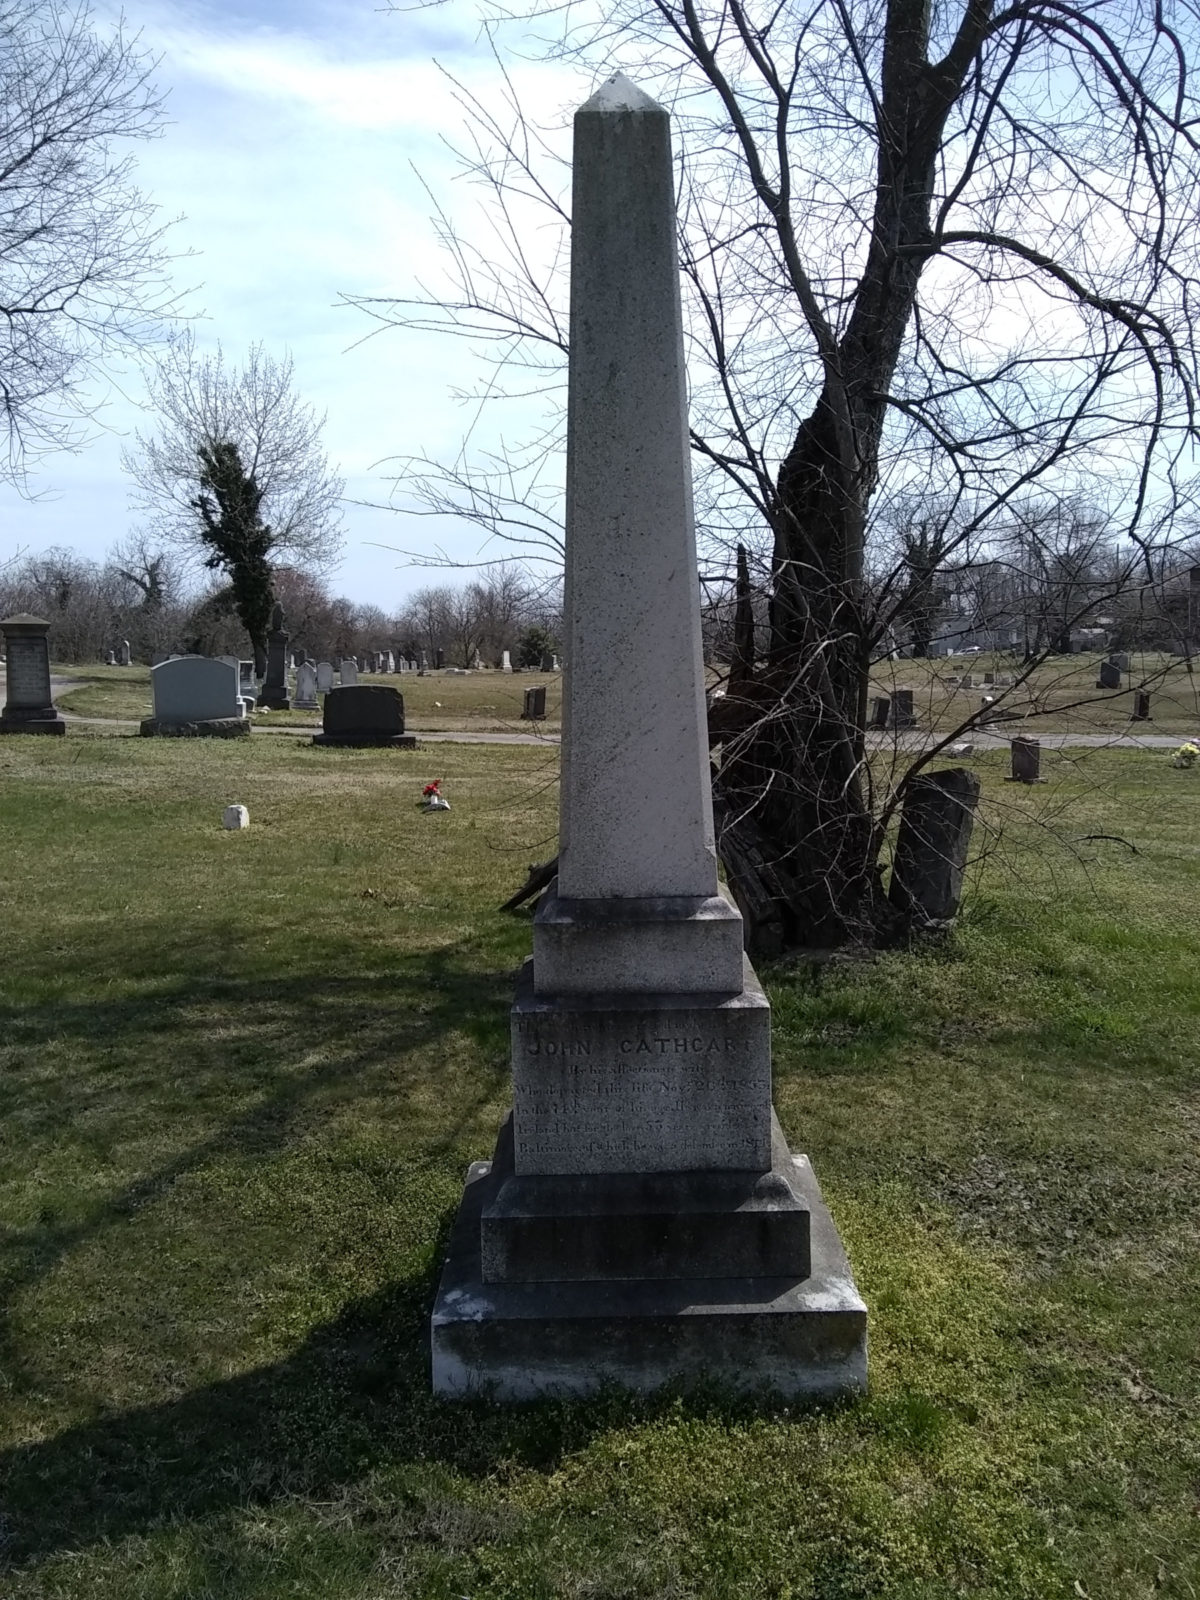 Obelisk monument for War of 1812 veteran John Cathcart